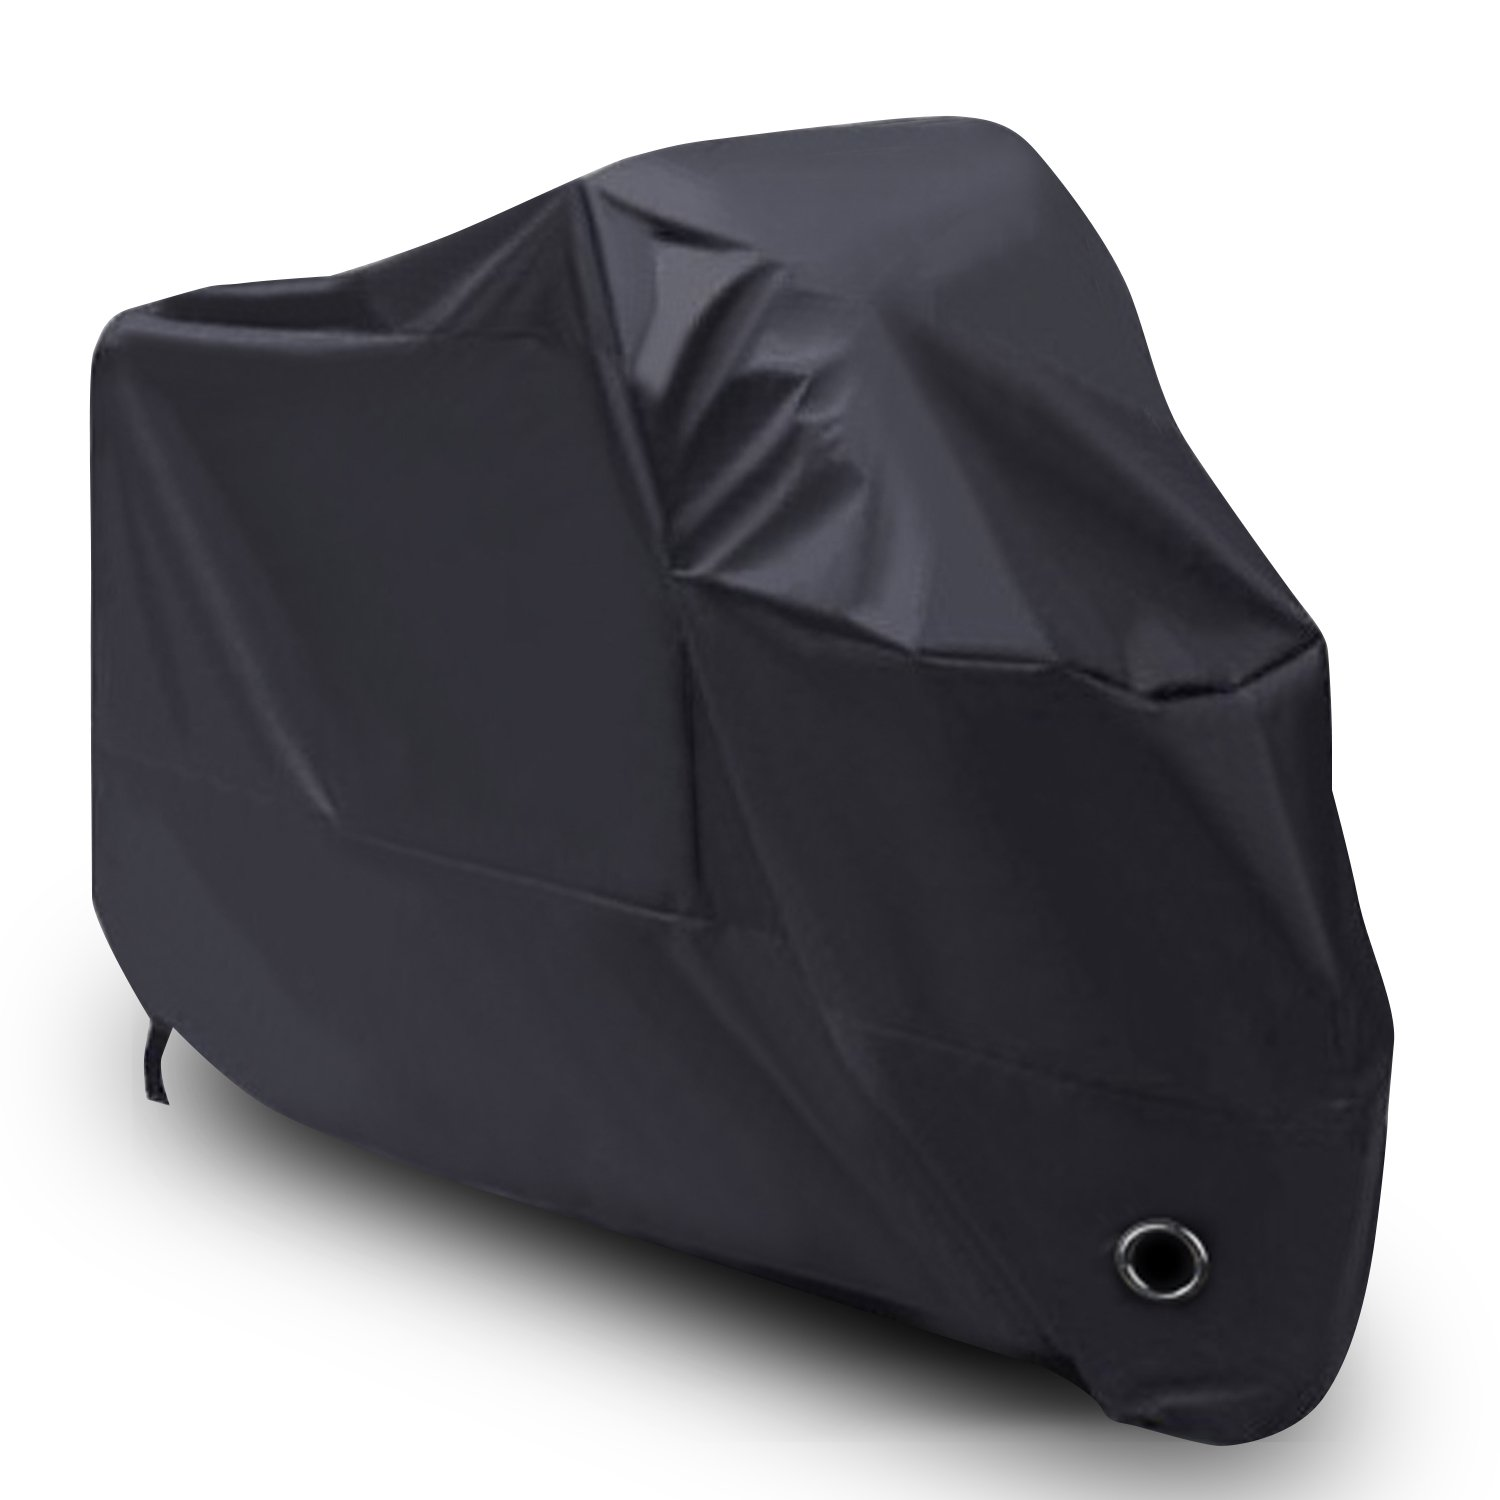 LIHAO Waterproof Motorcycle Cover Shelter Rain UV All Weather Protection